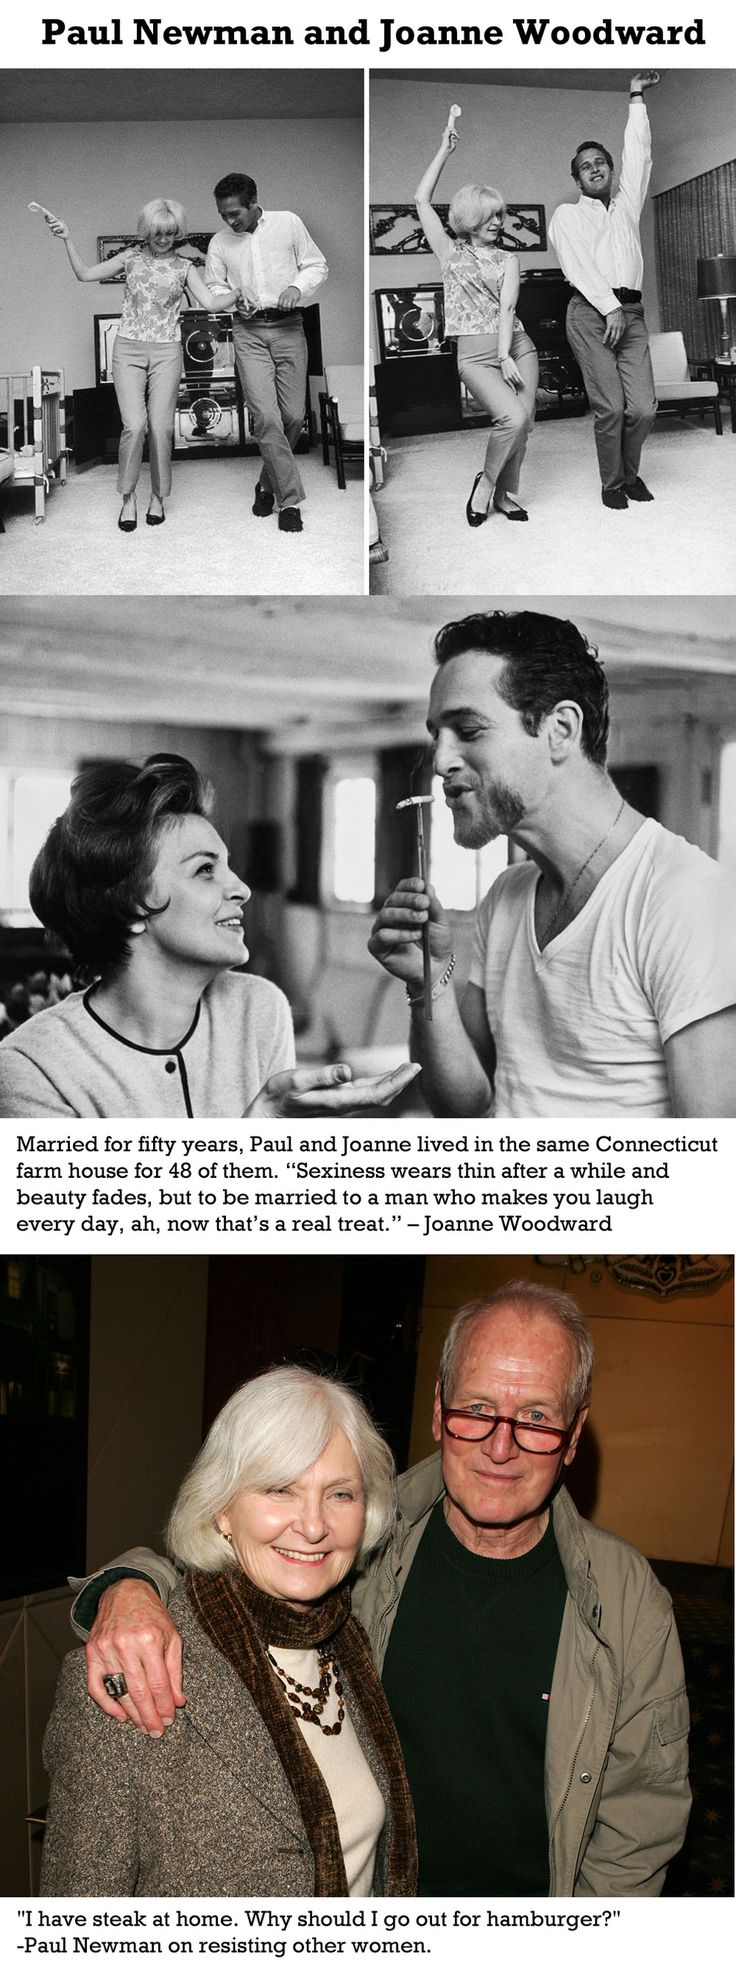 Sexiness wears thin after awhile and beauty fades, but to be married to a man who makes you laugh every day, ah, now that's a real treat. - Joanne Woodward